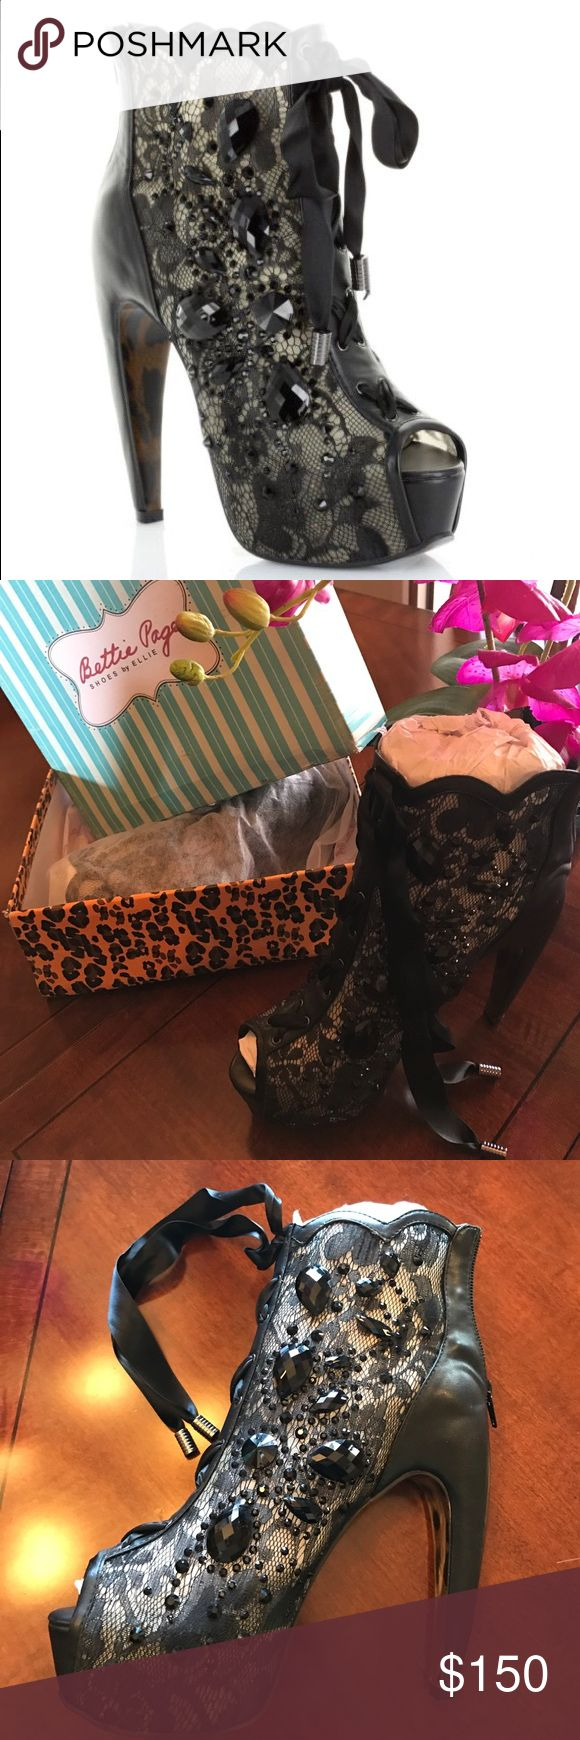 👠BETTIE PAGE LULA HEELS - NEW IN BOX👠 Absolutely GORGEOUS Black Bettie Page ankle booties! Stunning! Brand new in box with shoe cover bags! Ordered them online but my foot cannot wear such a steep heel...broke my heart! My loss is your gain! Also fits a little small! Bettie Page Shoes Ankle Boots & Booties